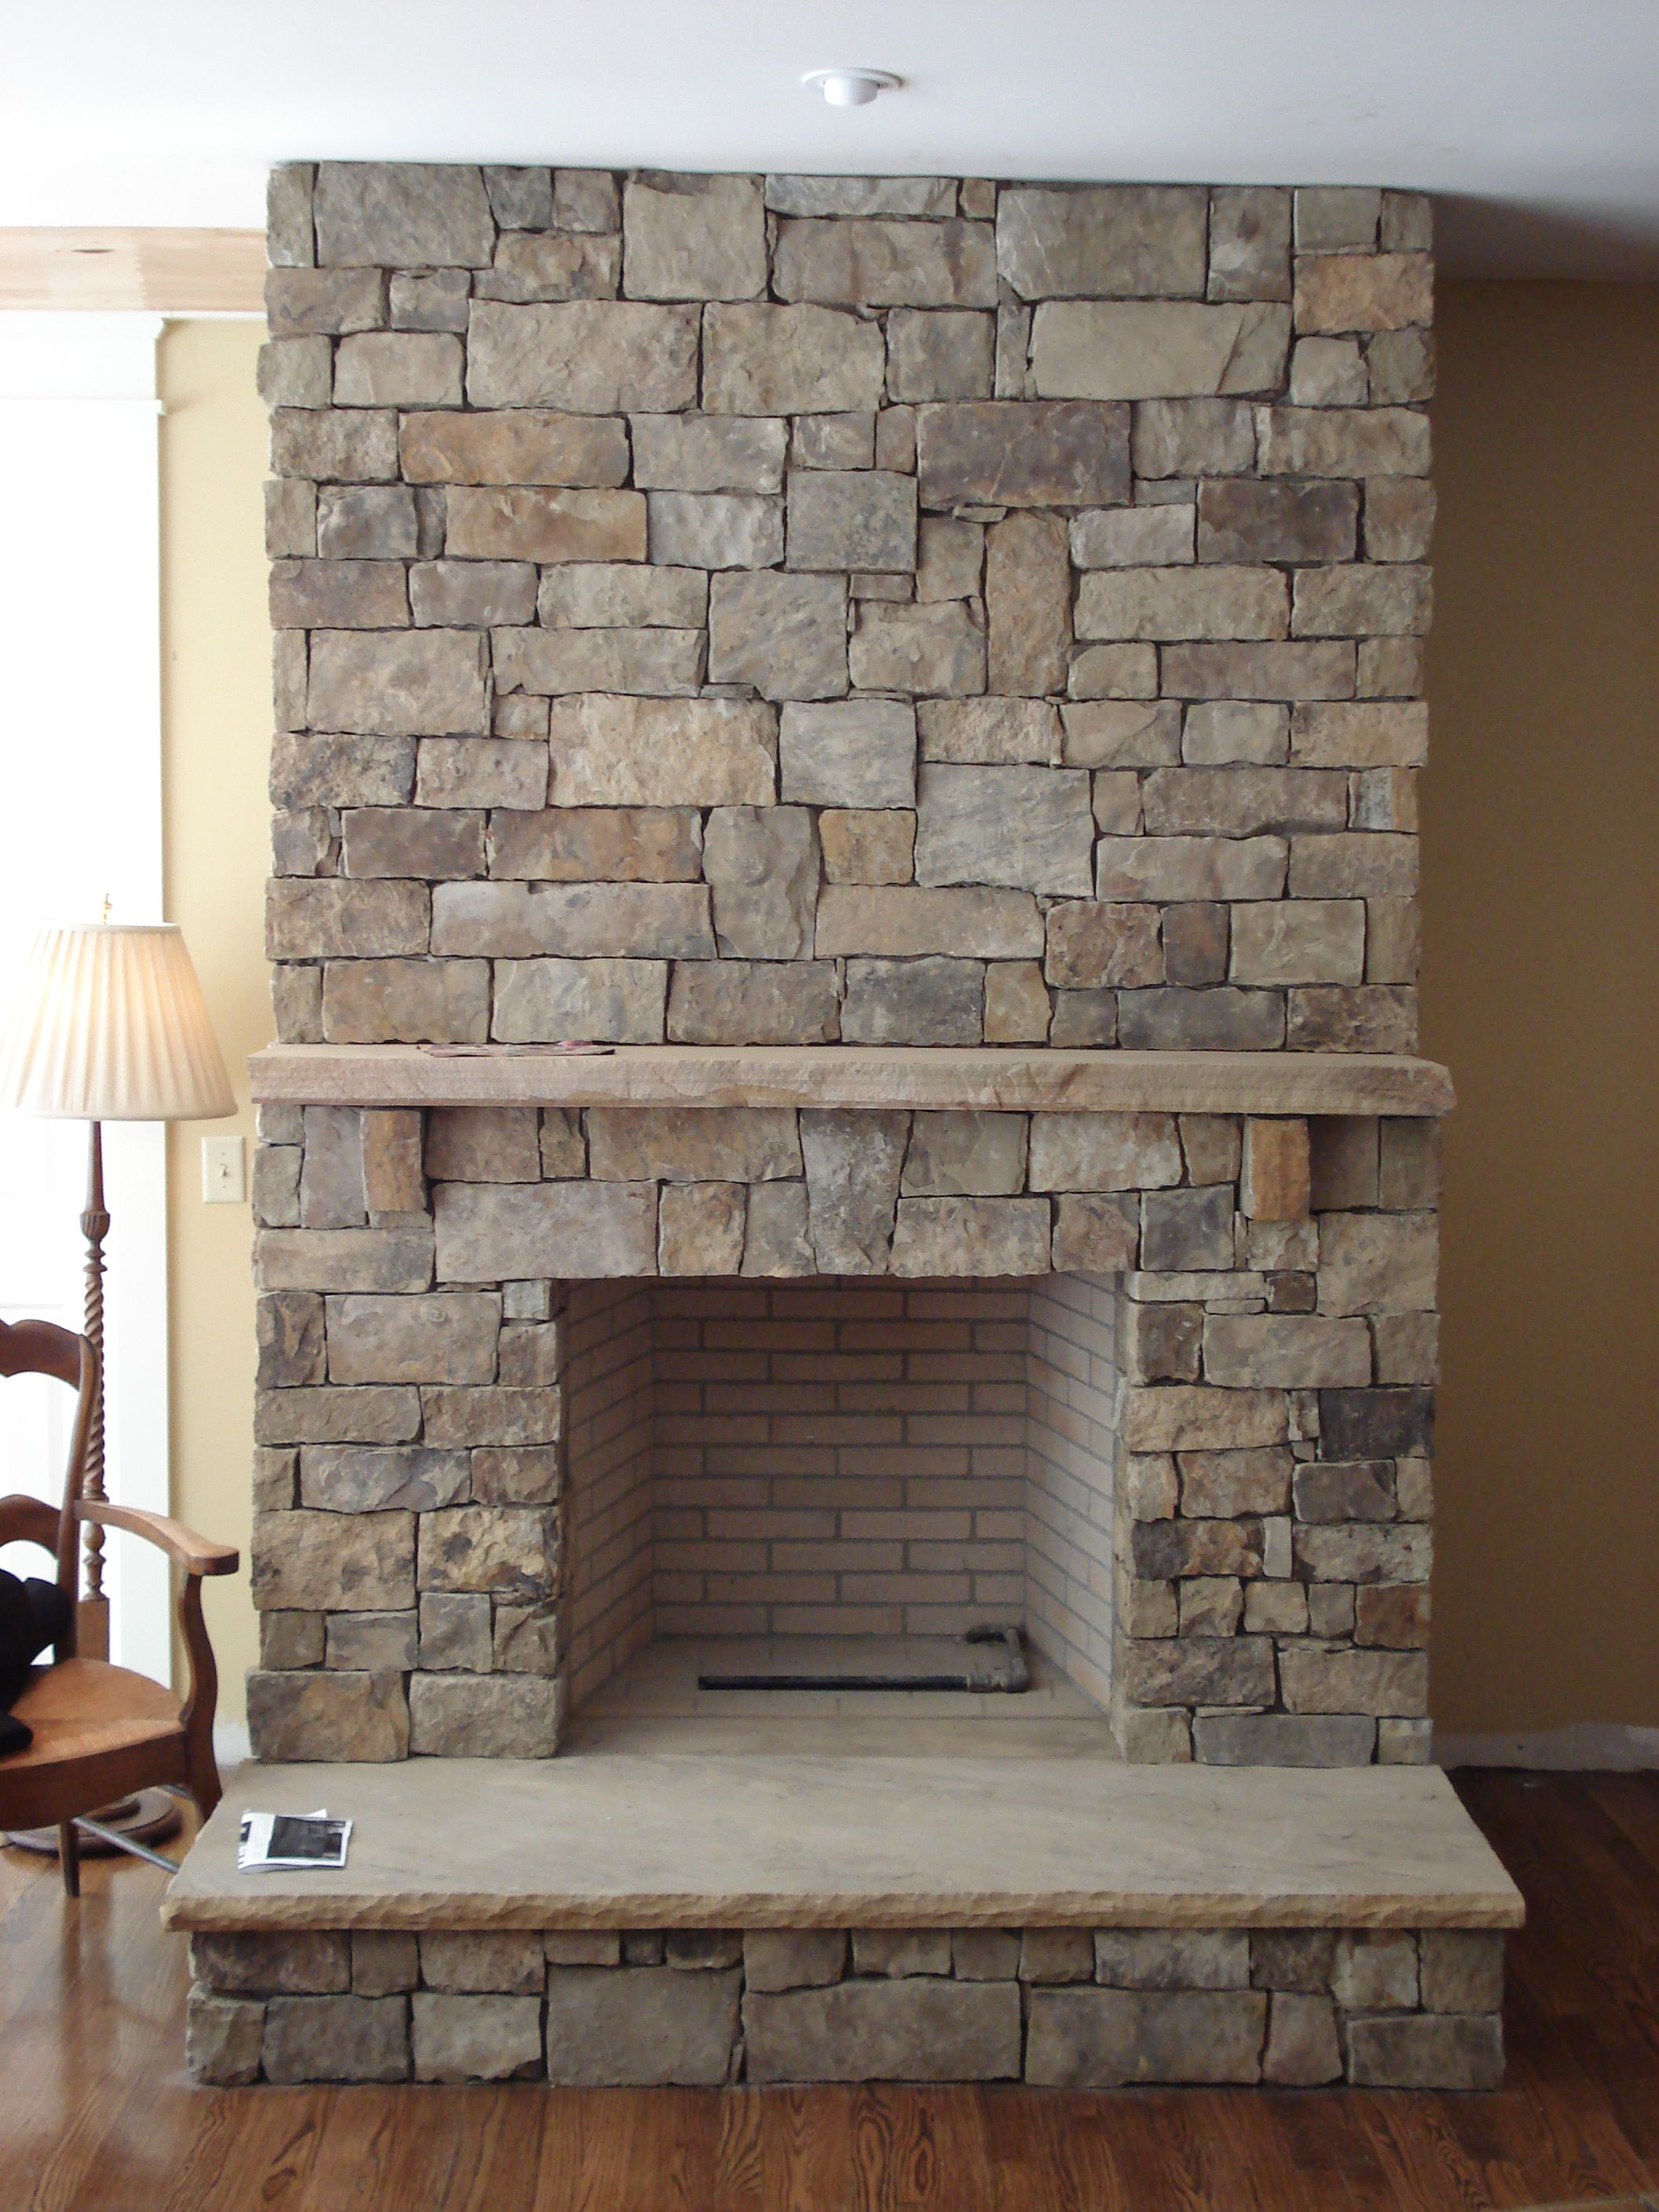 Natural stone fireplaces stone fireplaces fire places stone fireplace hearth stone - Images of stone fireplaces ...